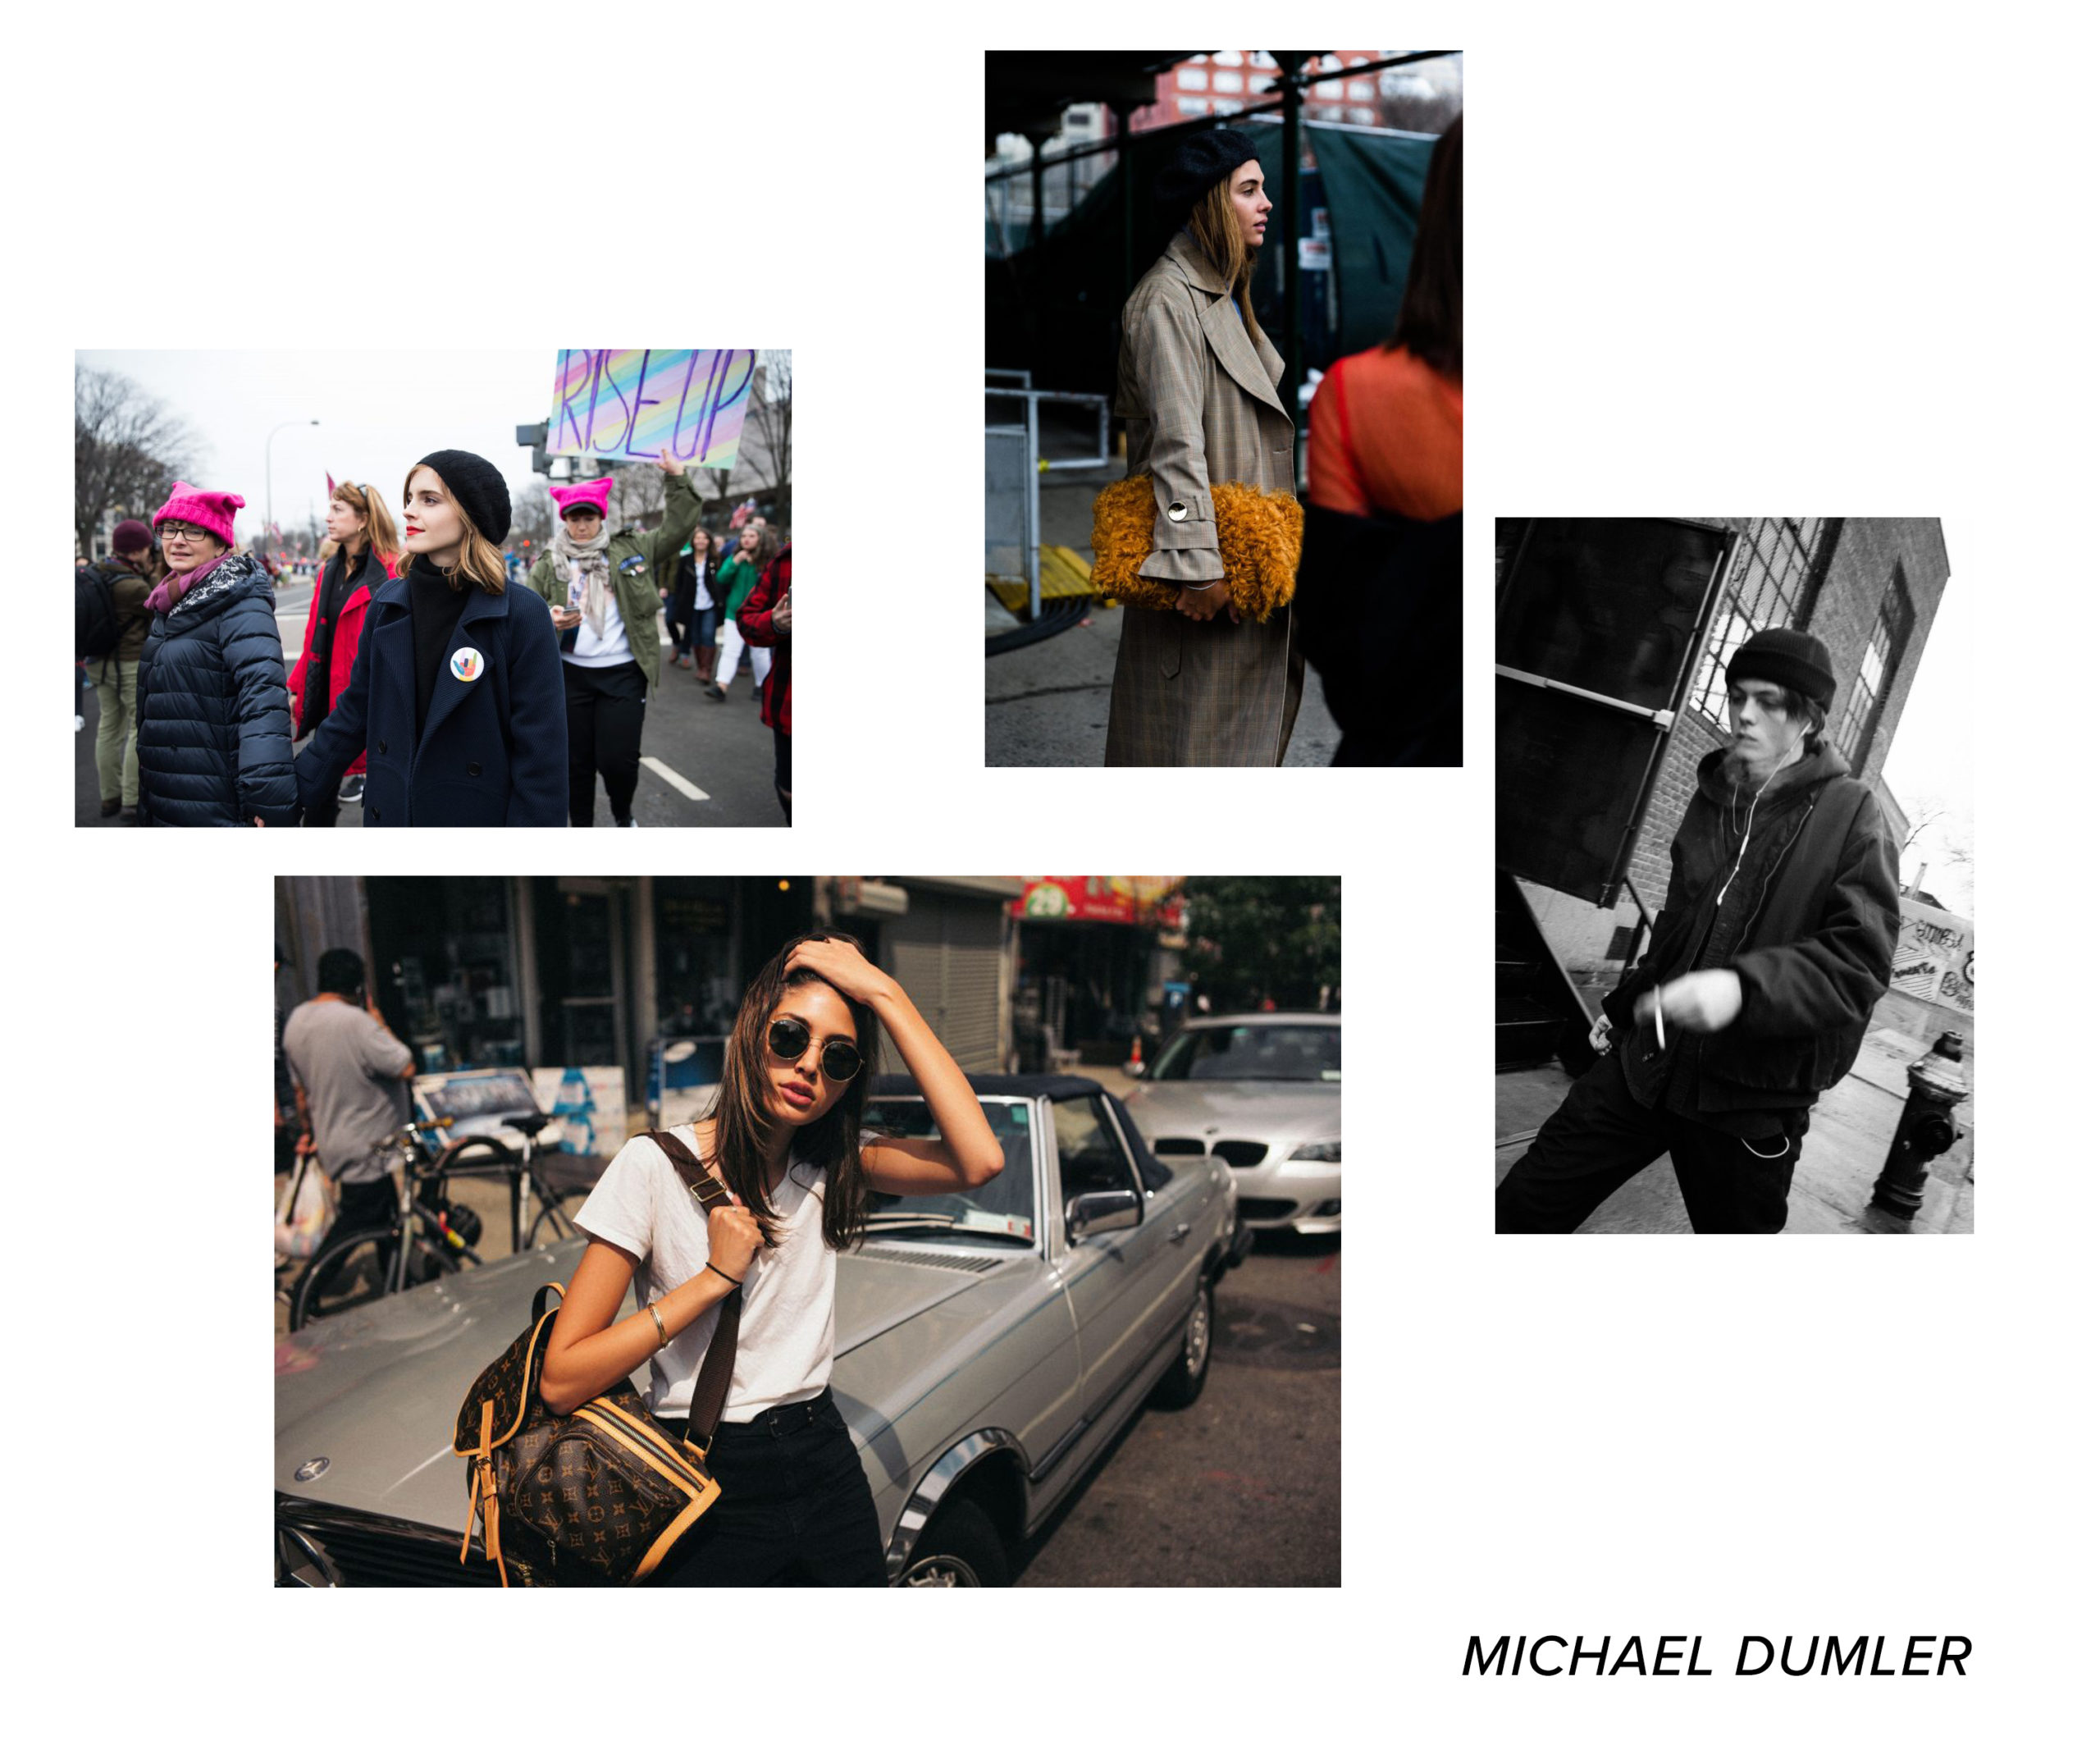 Michael Dumler - 19 Photographers Taking Photos of Your Favorite Models and Designers - FilterGrade